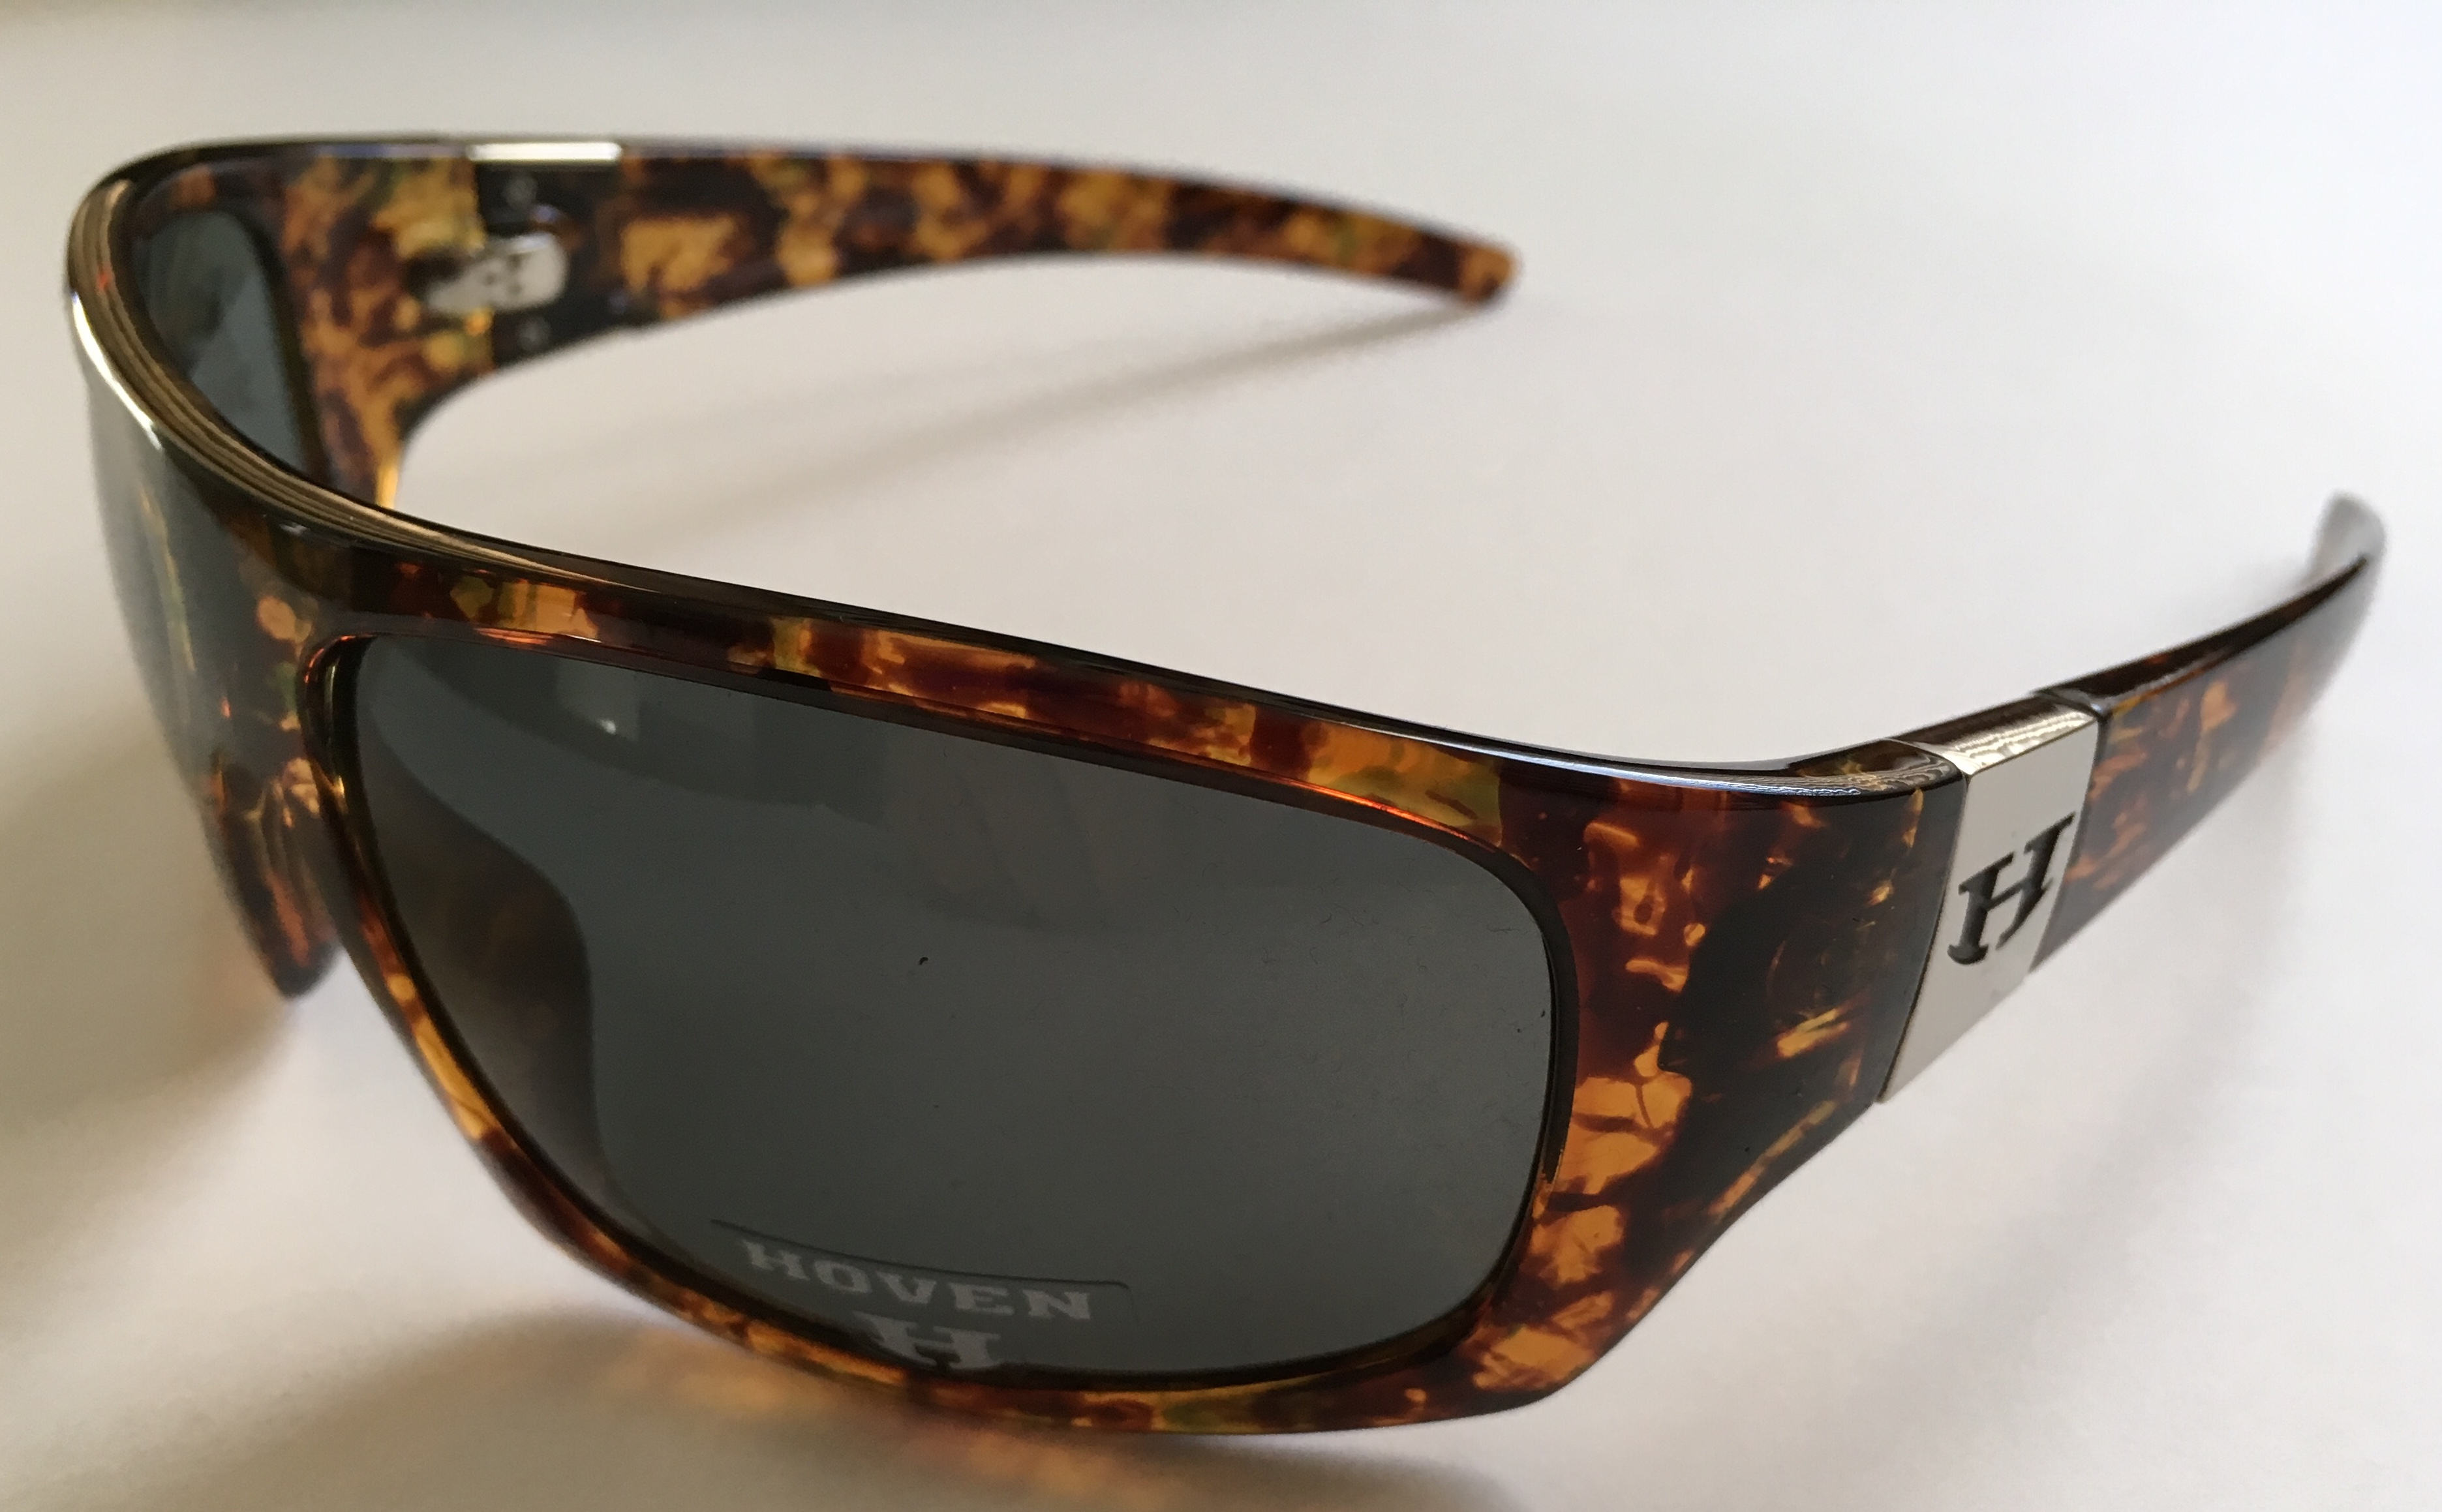 72d58fdcca Hoven Sunglasses Outlet